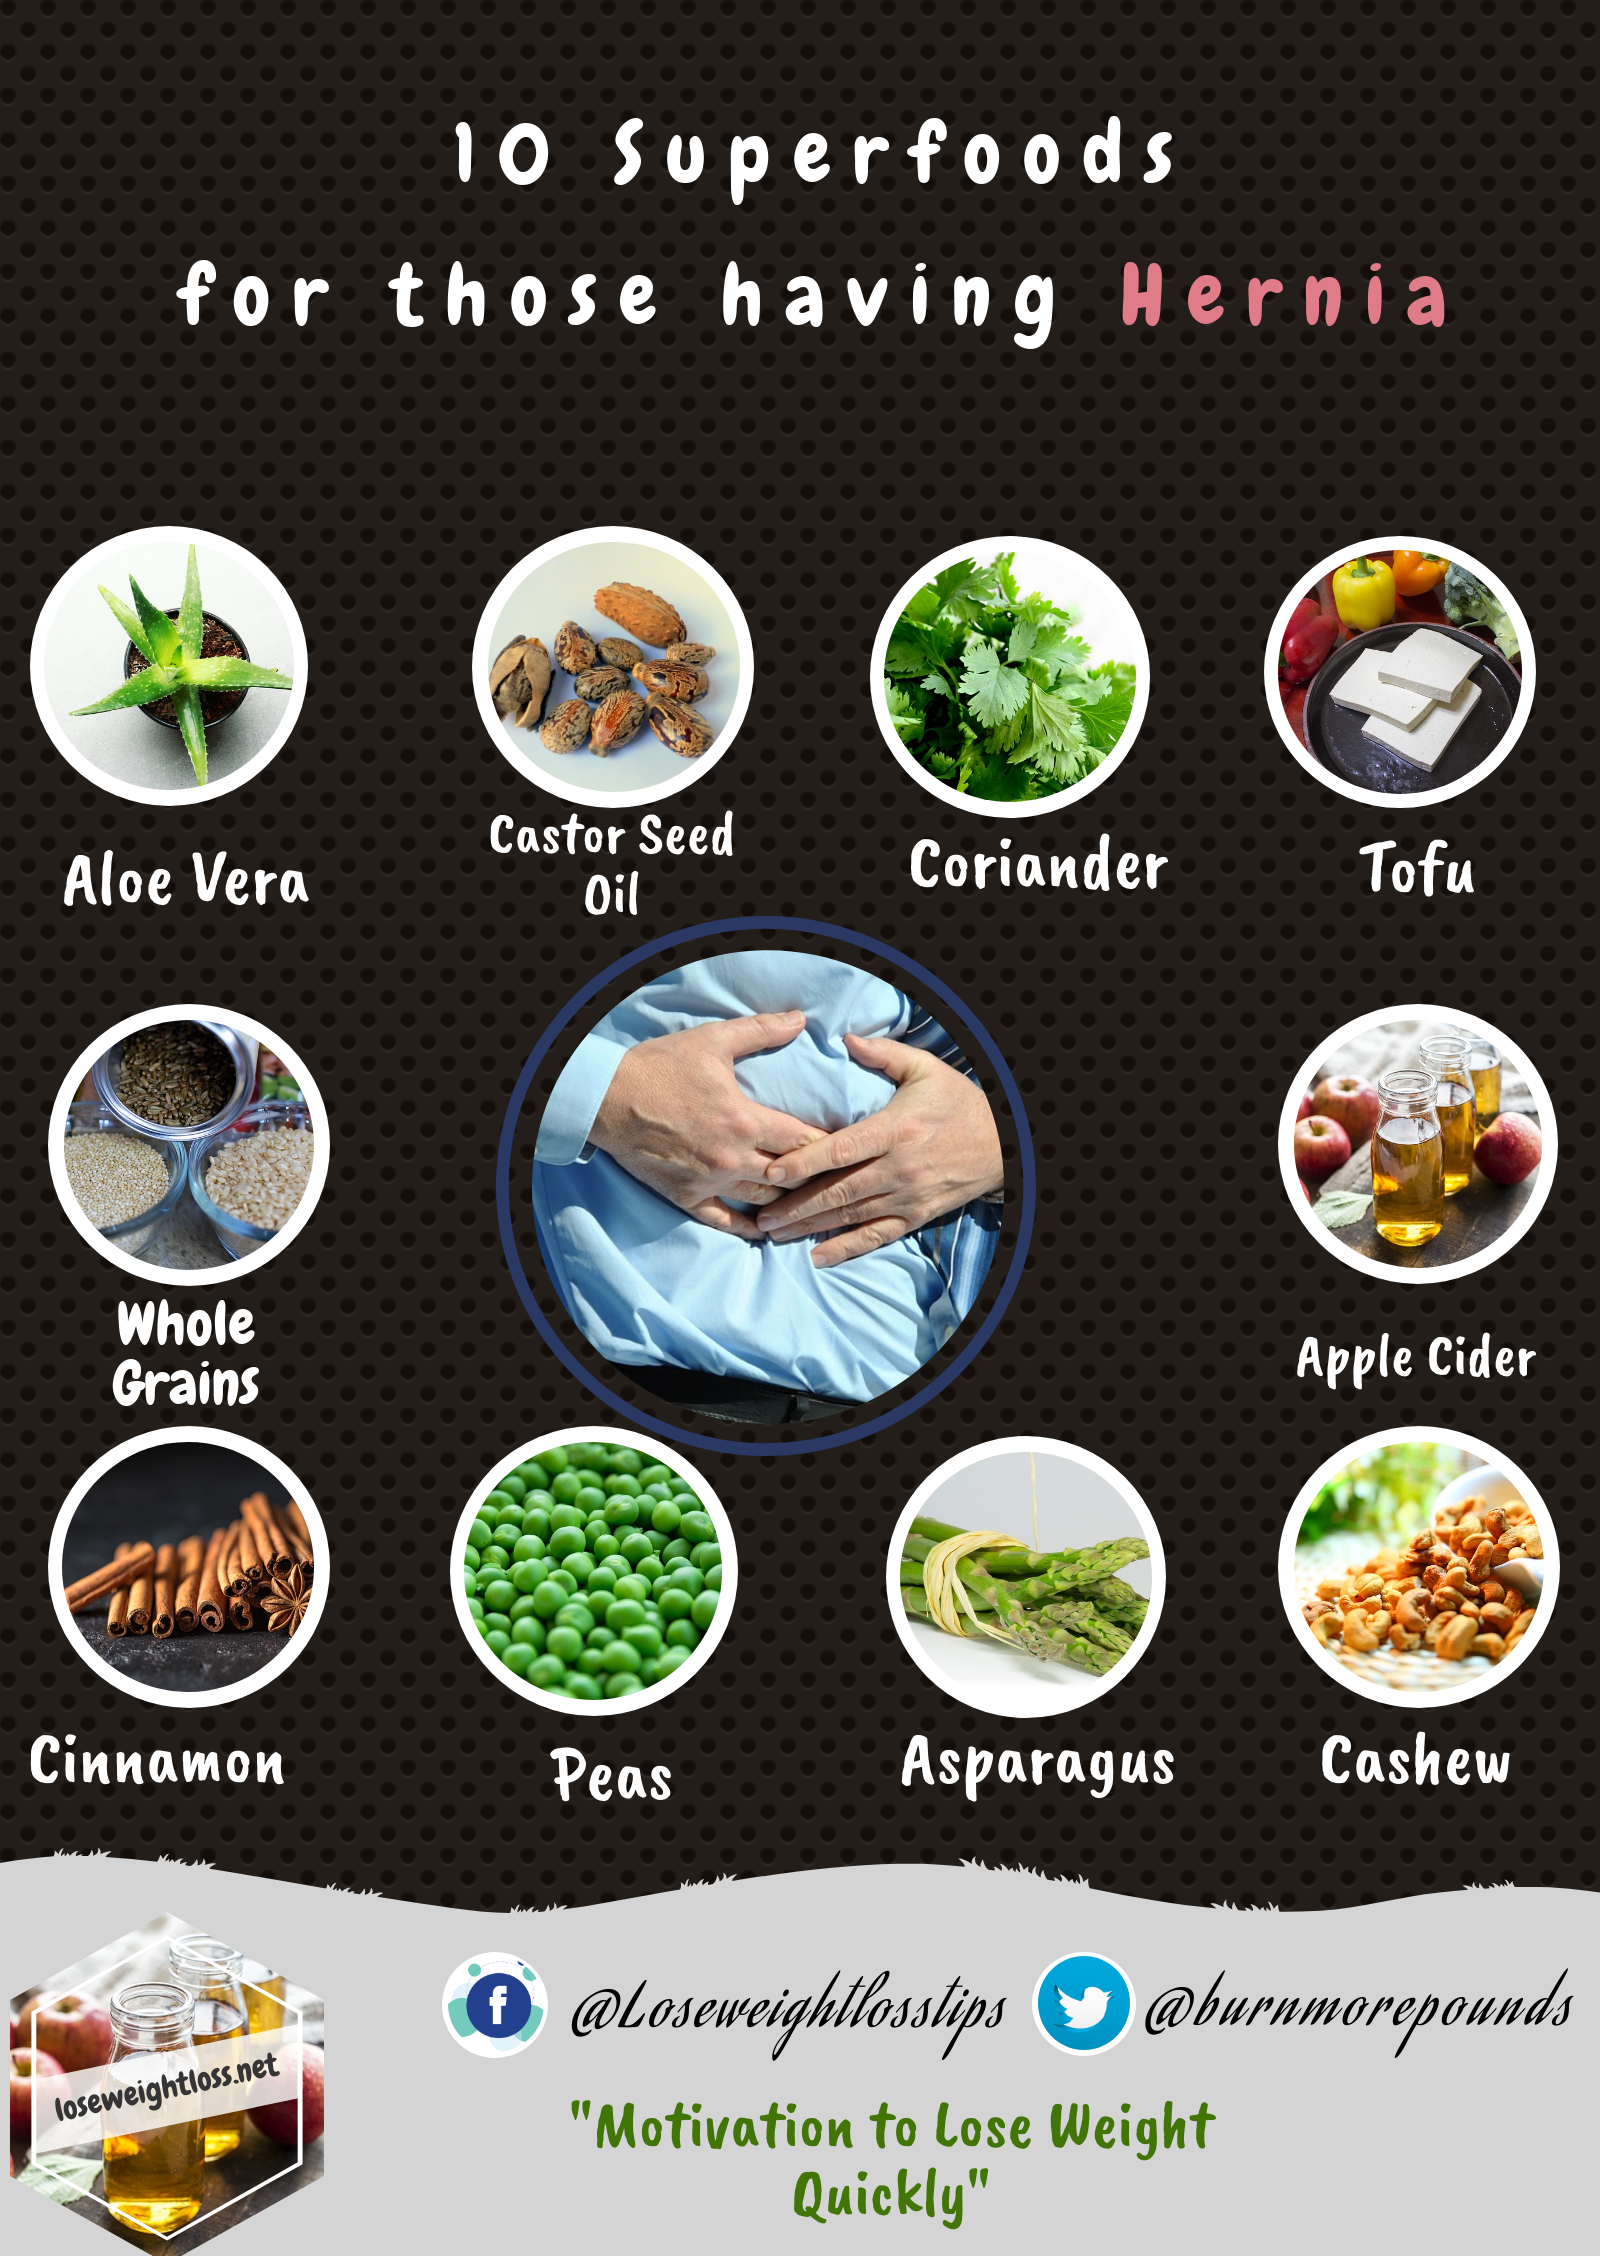 Superfoods for those having hernia